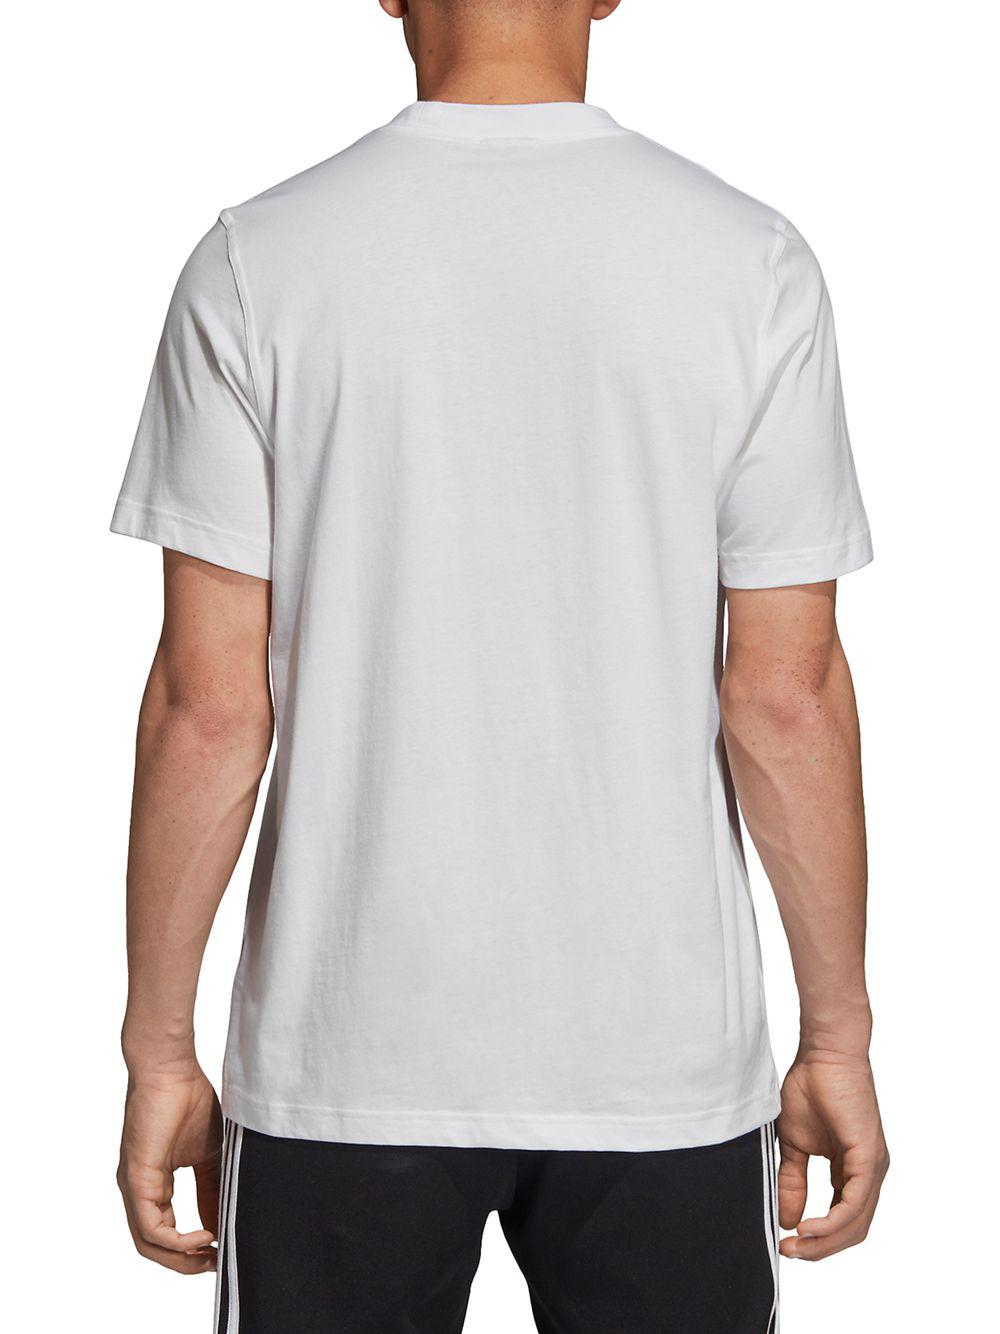 1d6e2605c1d09 Lyst - Adidas Graphic Cotton Tee in White for Men